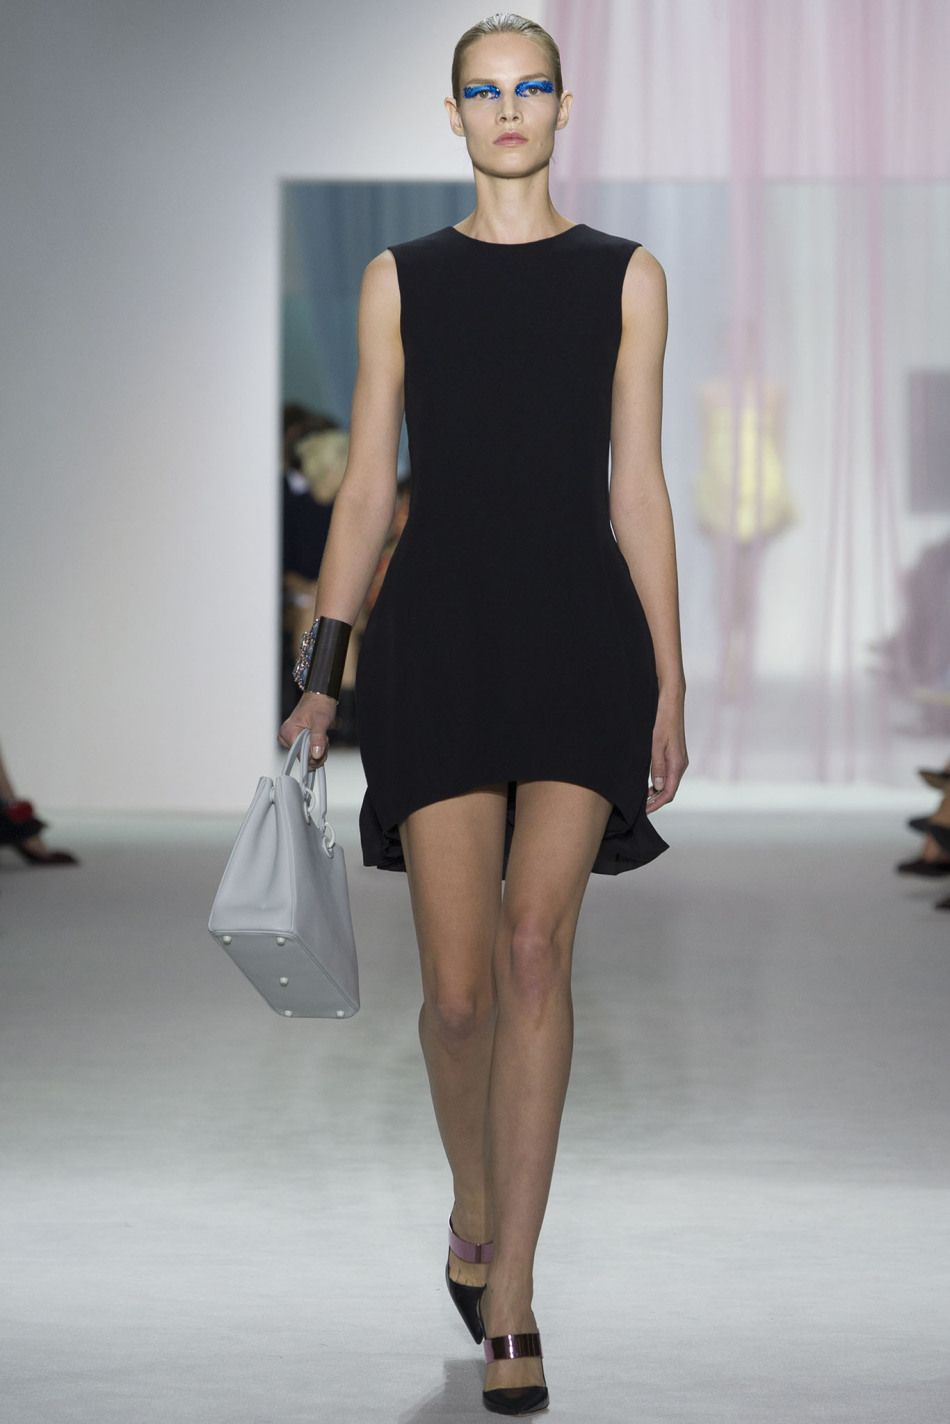 this dress is sheath dress.(definition of sheath dress:a close